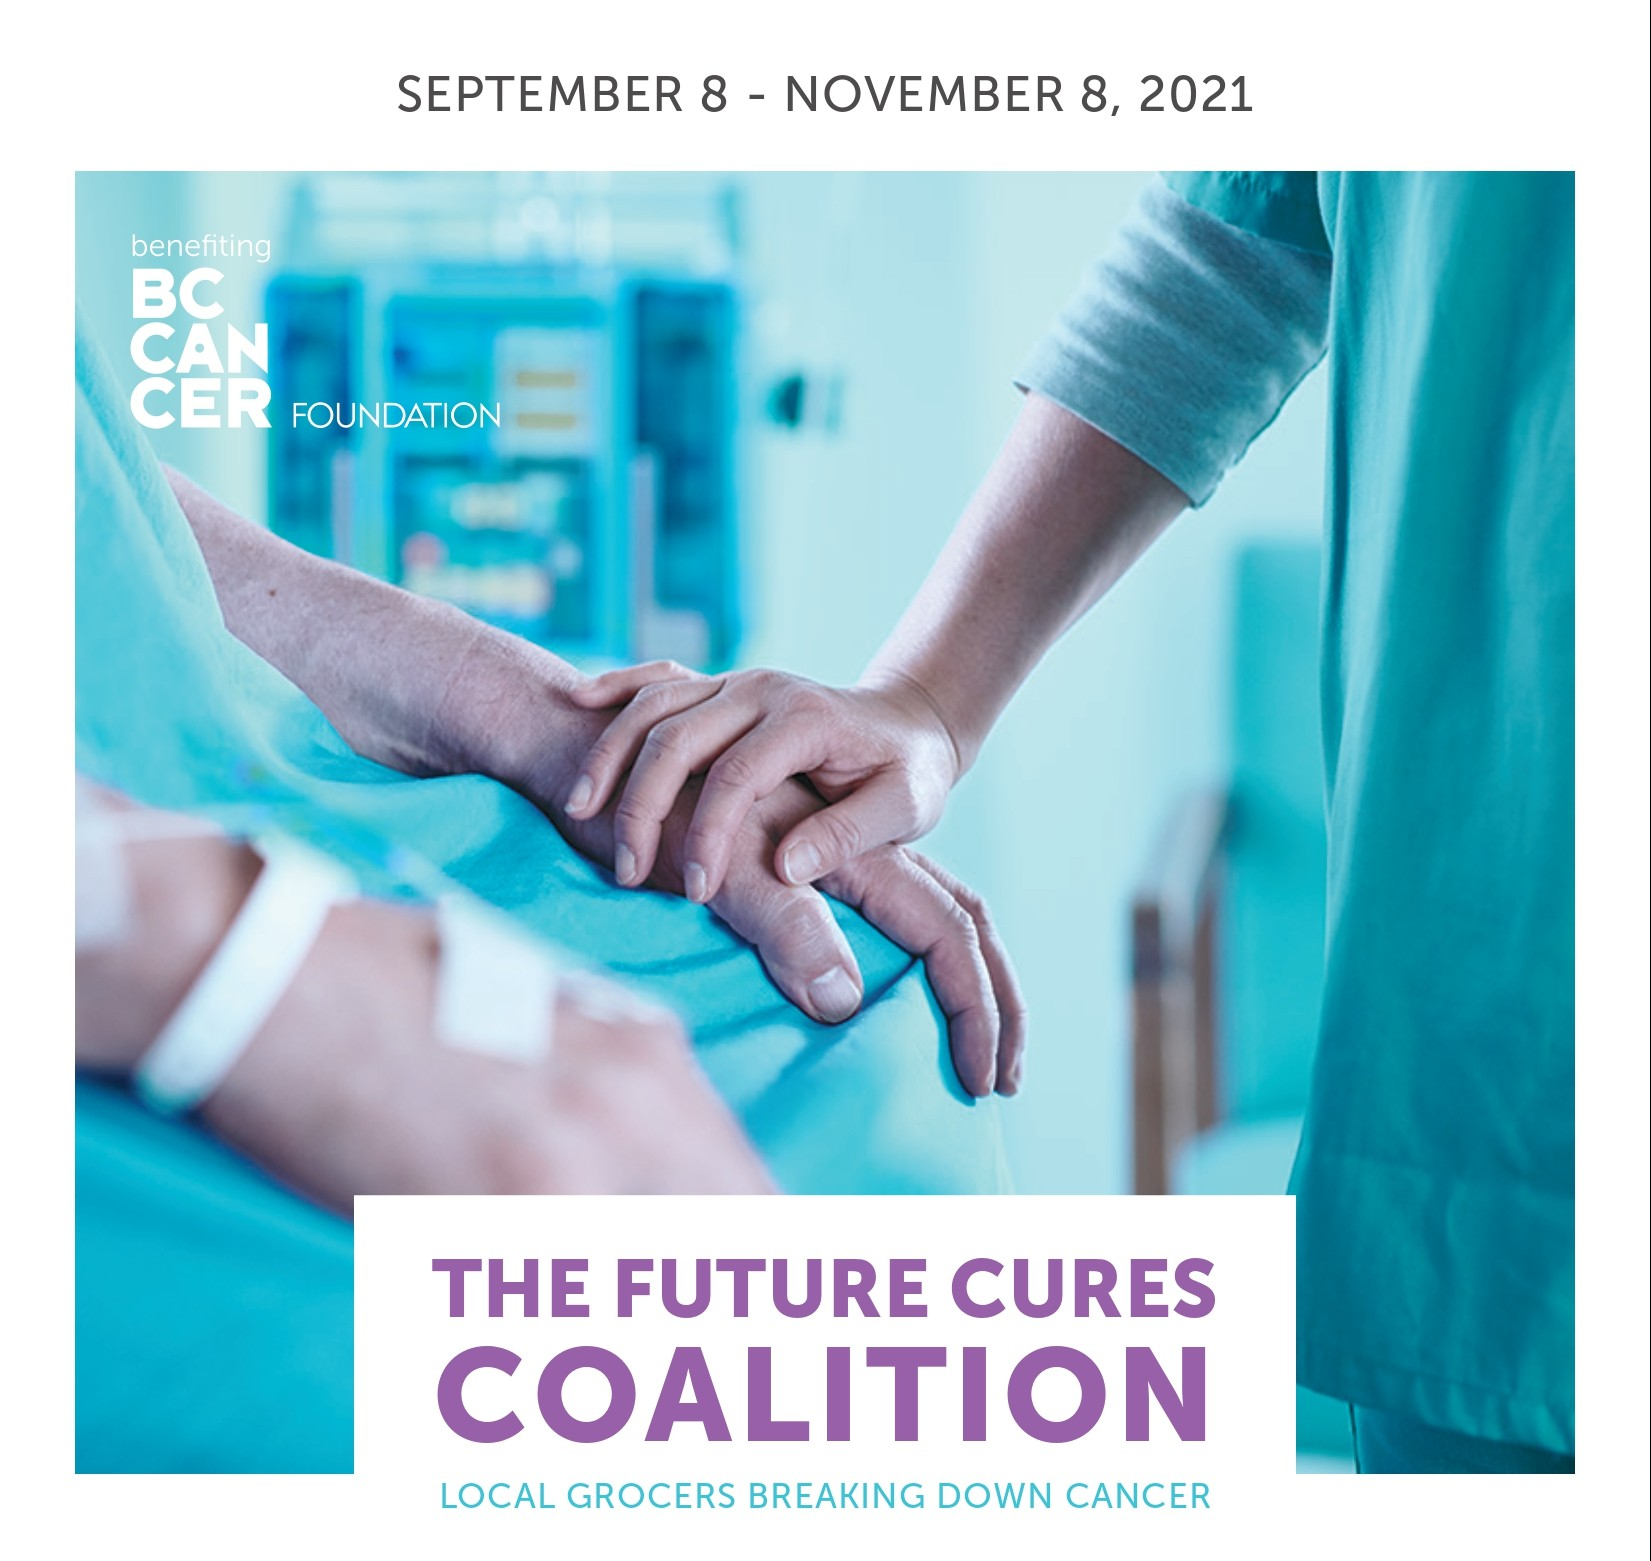 The Future Cures Coalition: Local Grocers Breaking Down Cancer